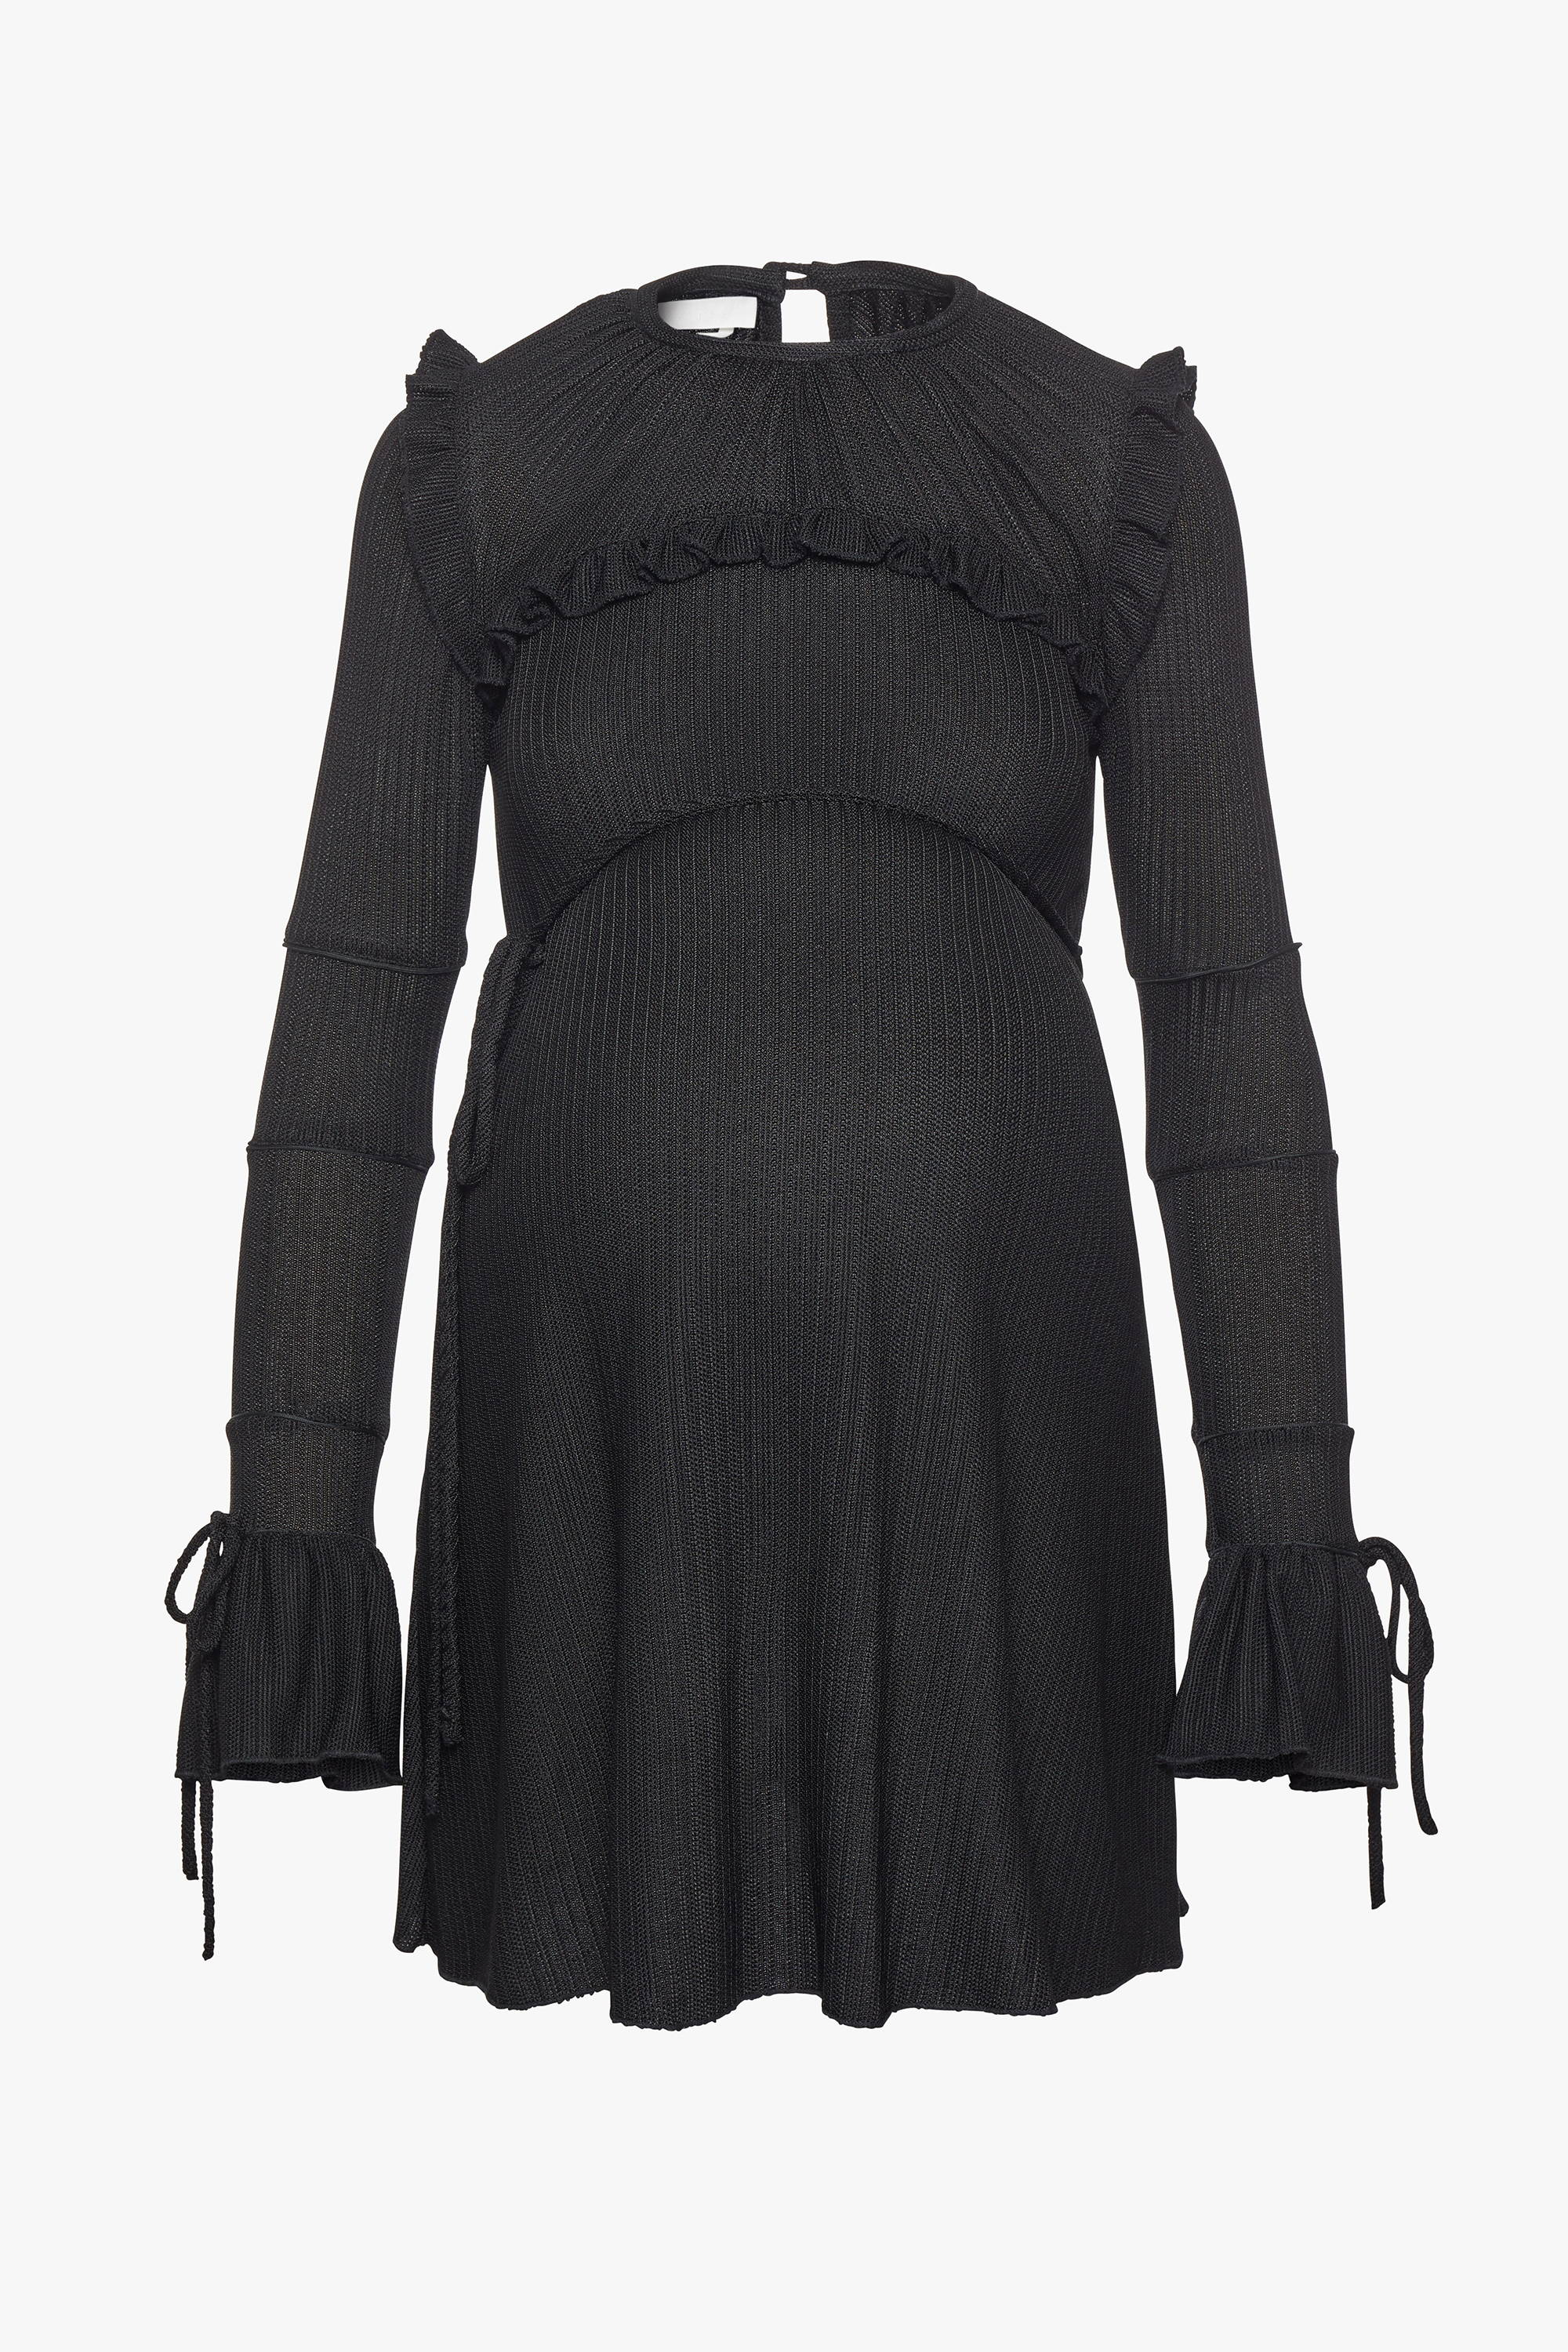 The maternity friendly Wonderland dress in black knit